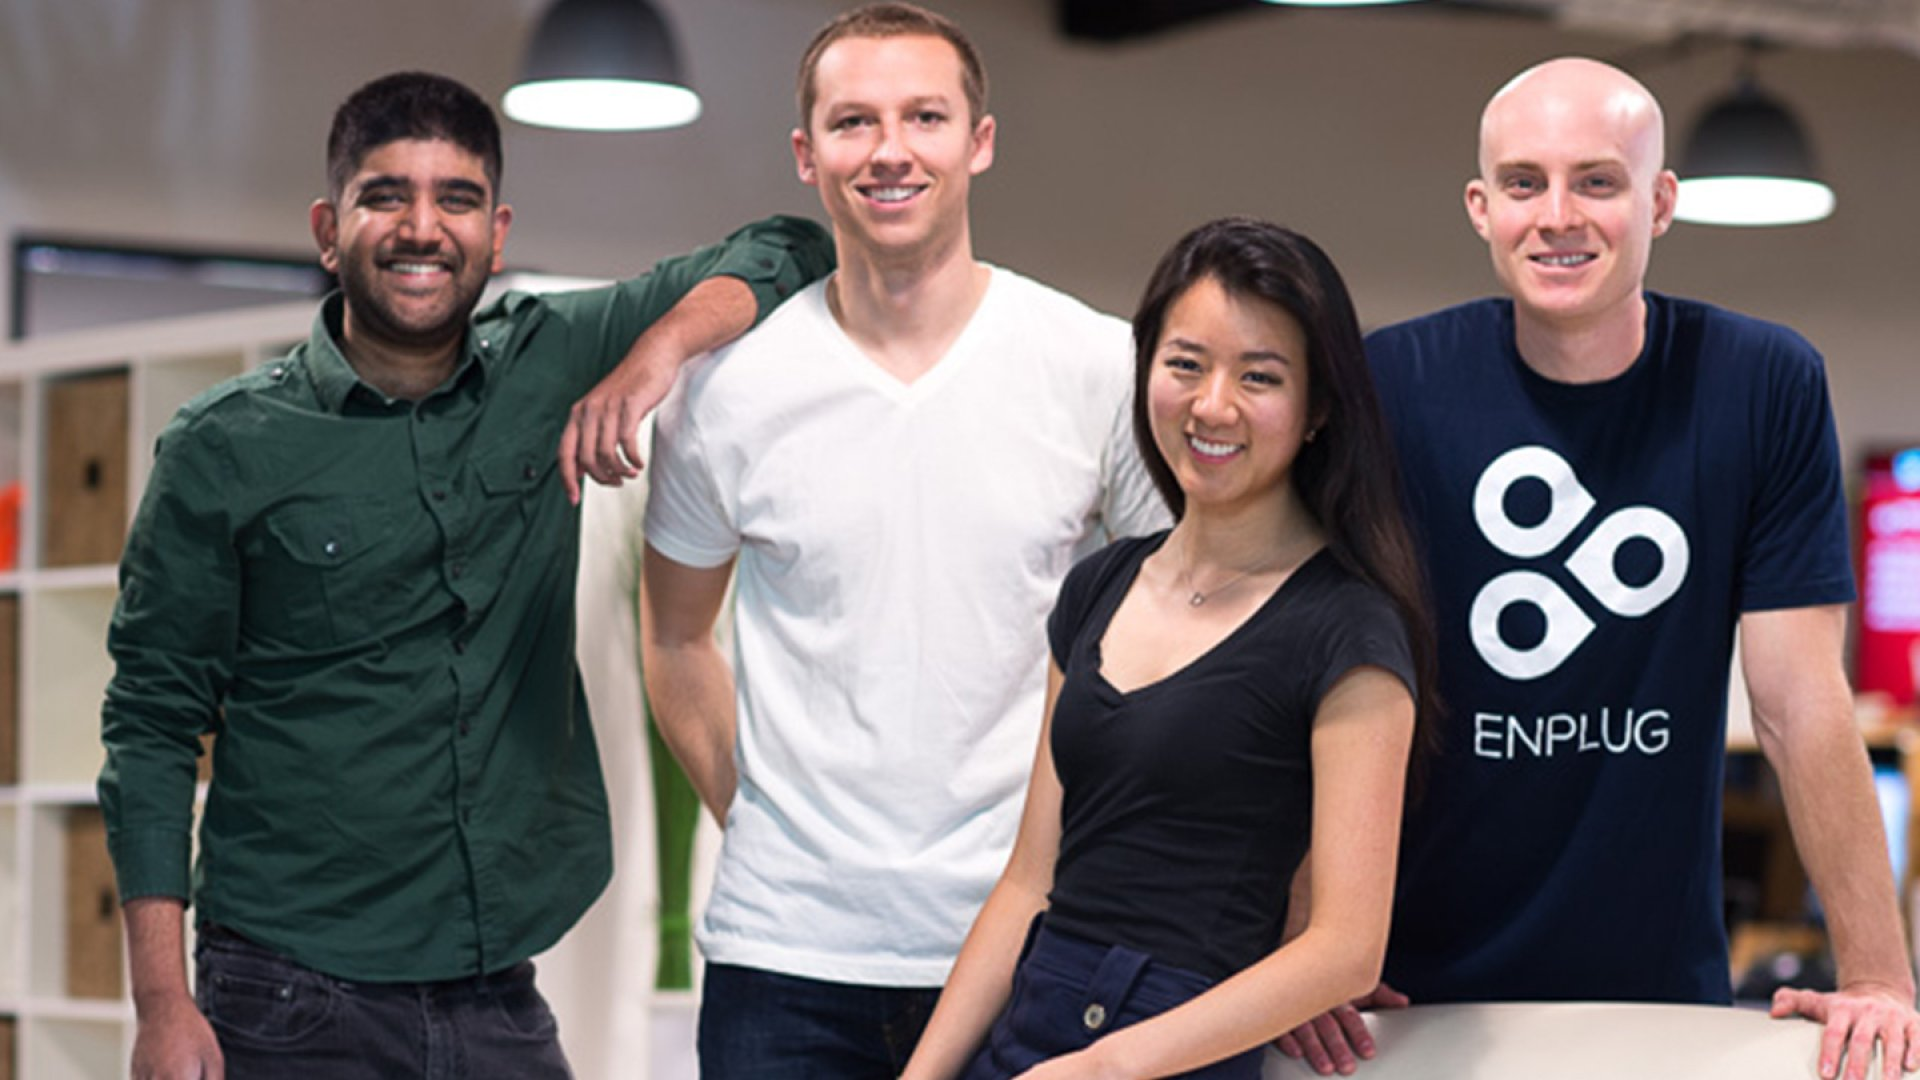 Navdeep Reddy, Zach Spitulski, Nanxi Liu, and Alex Ross lived and worked together in the same house in the early days of launching Enplug.